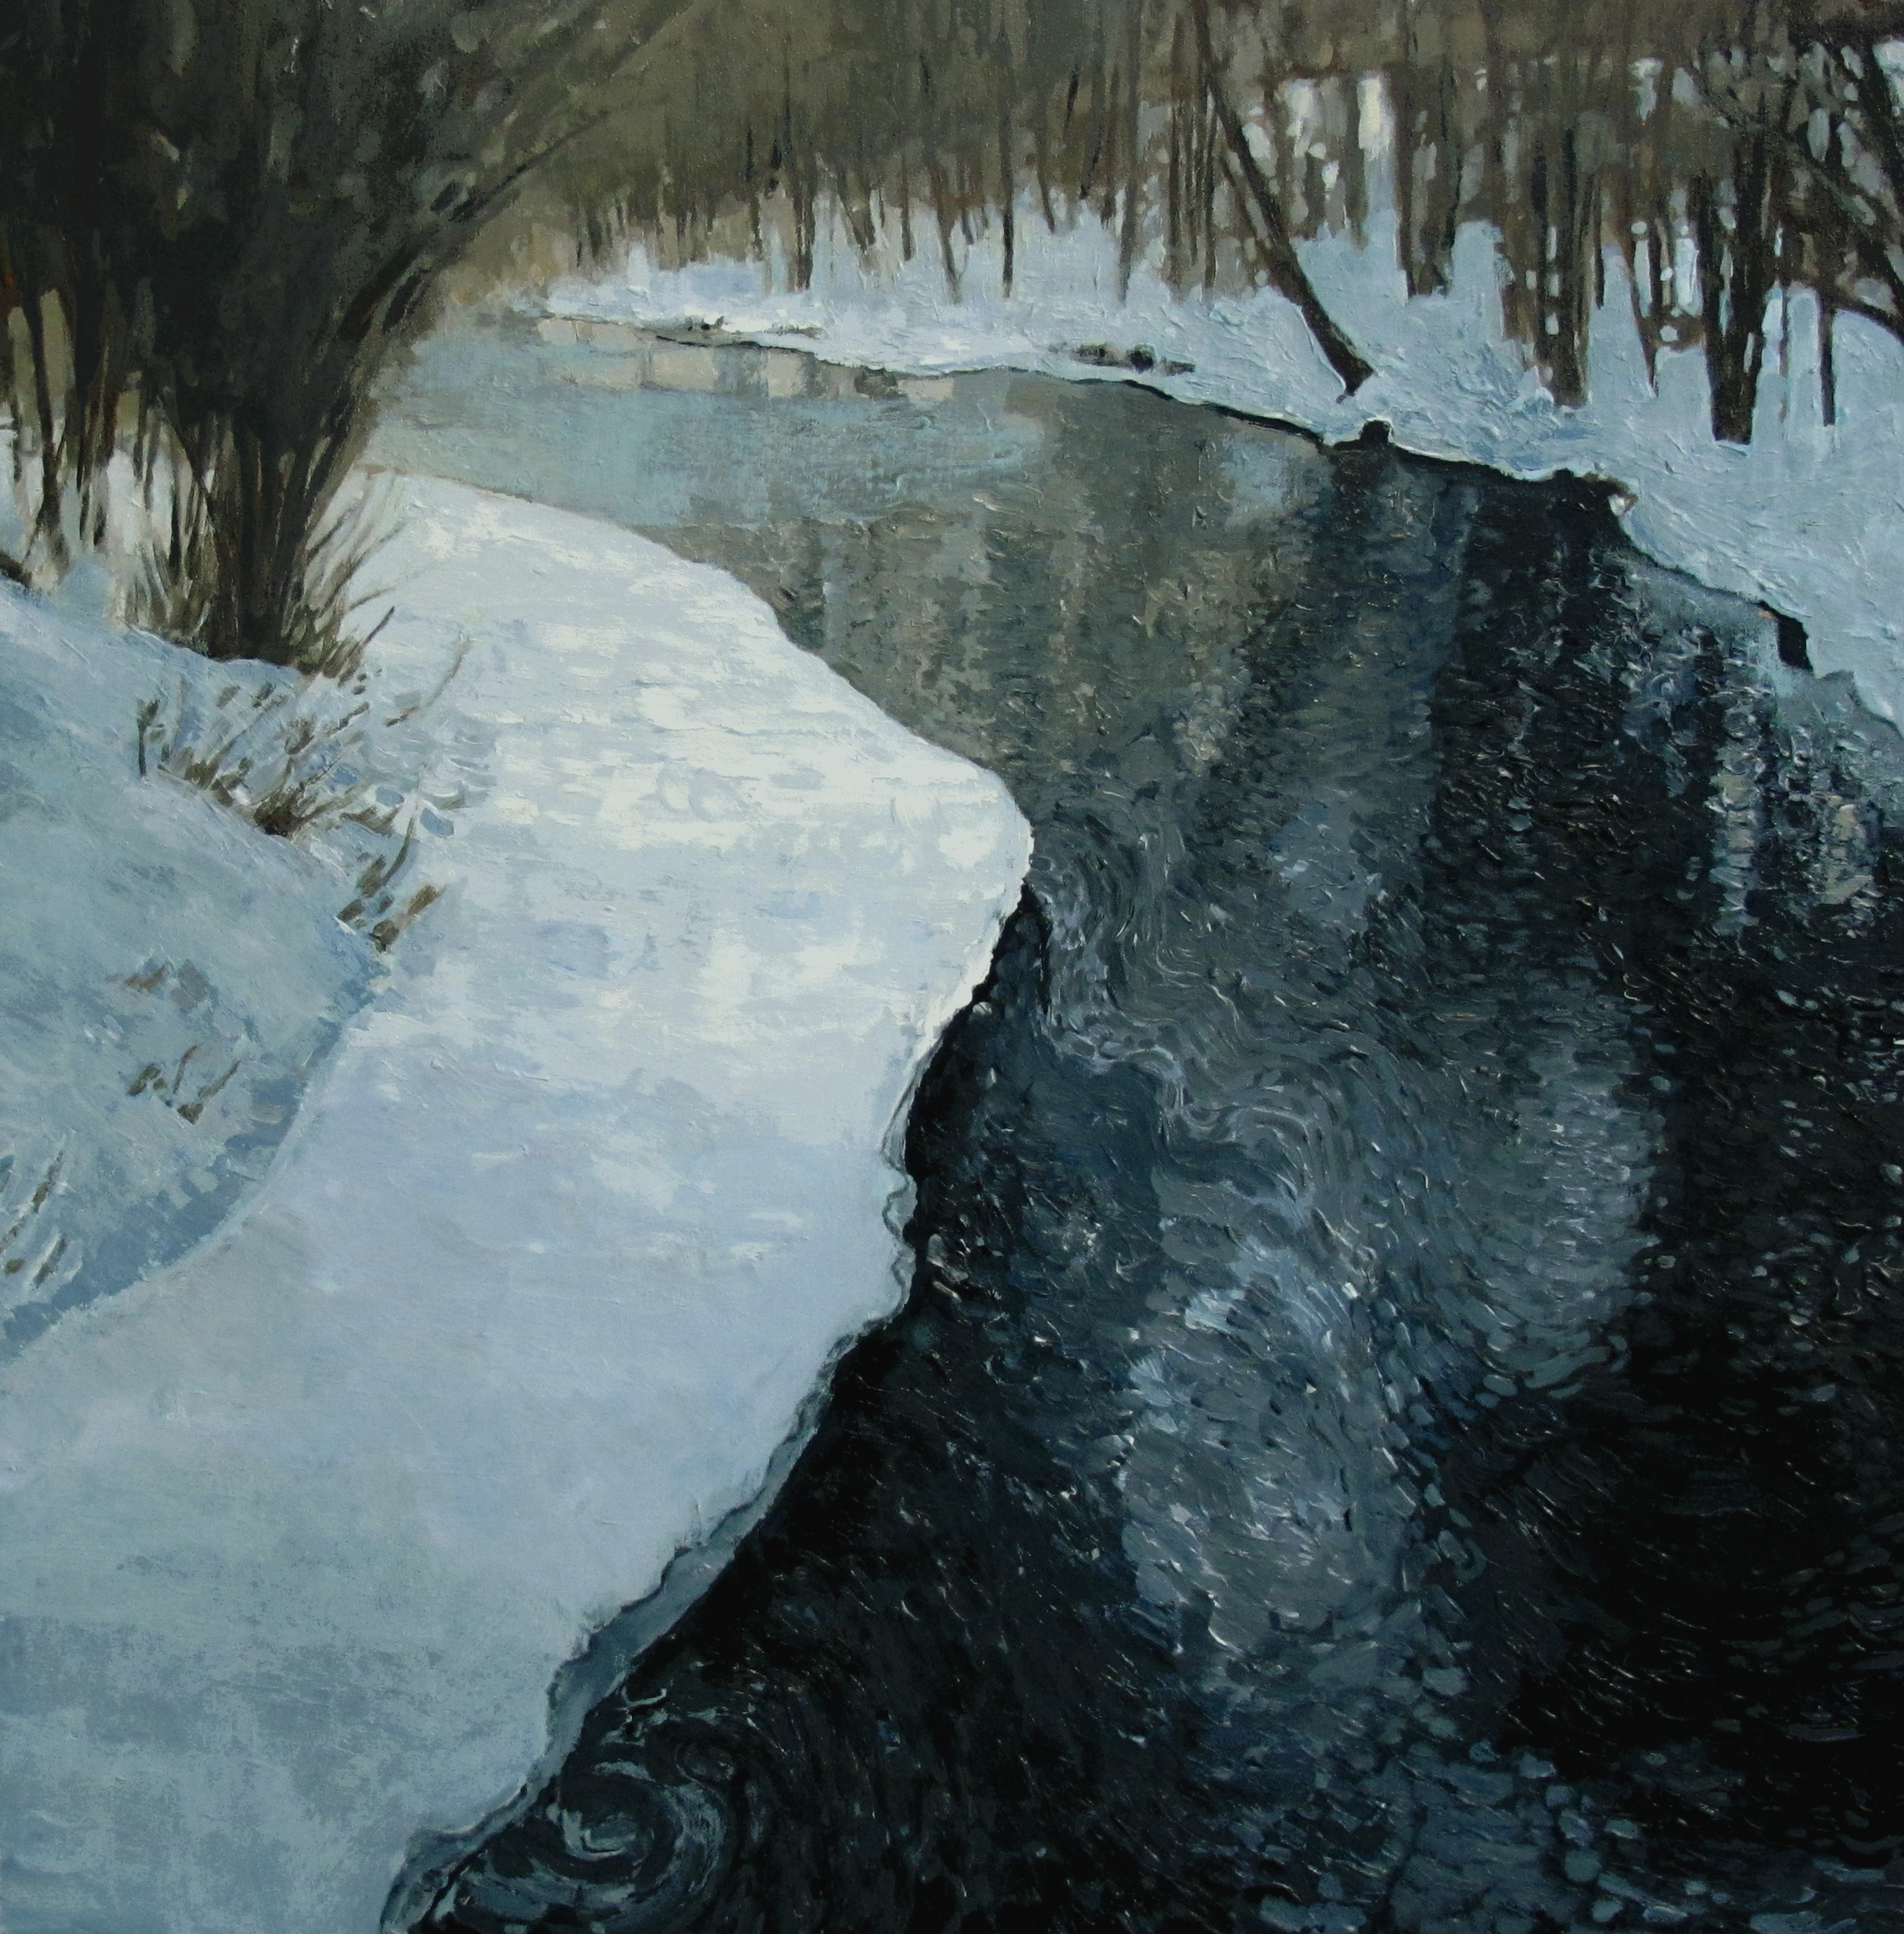 The Don River in winter